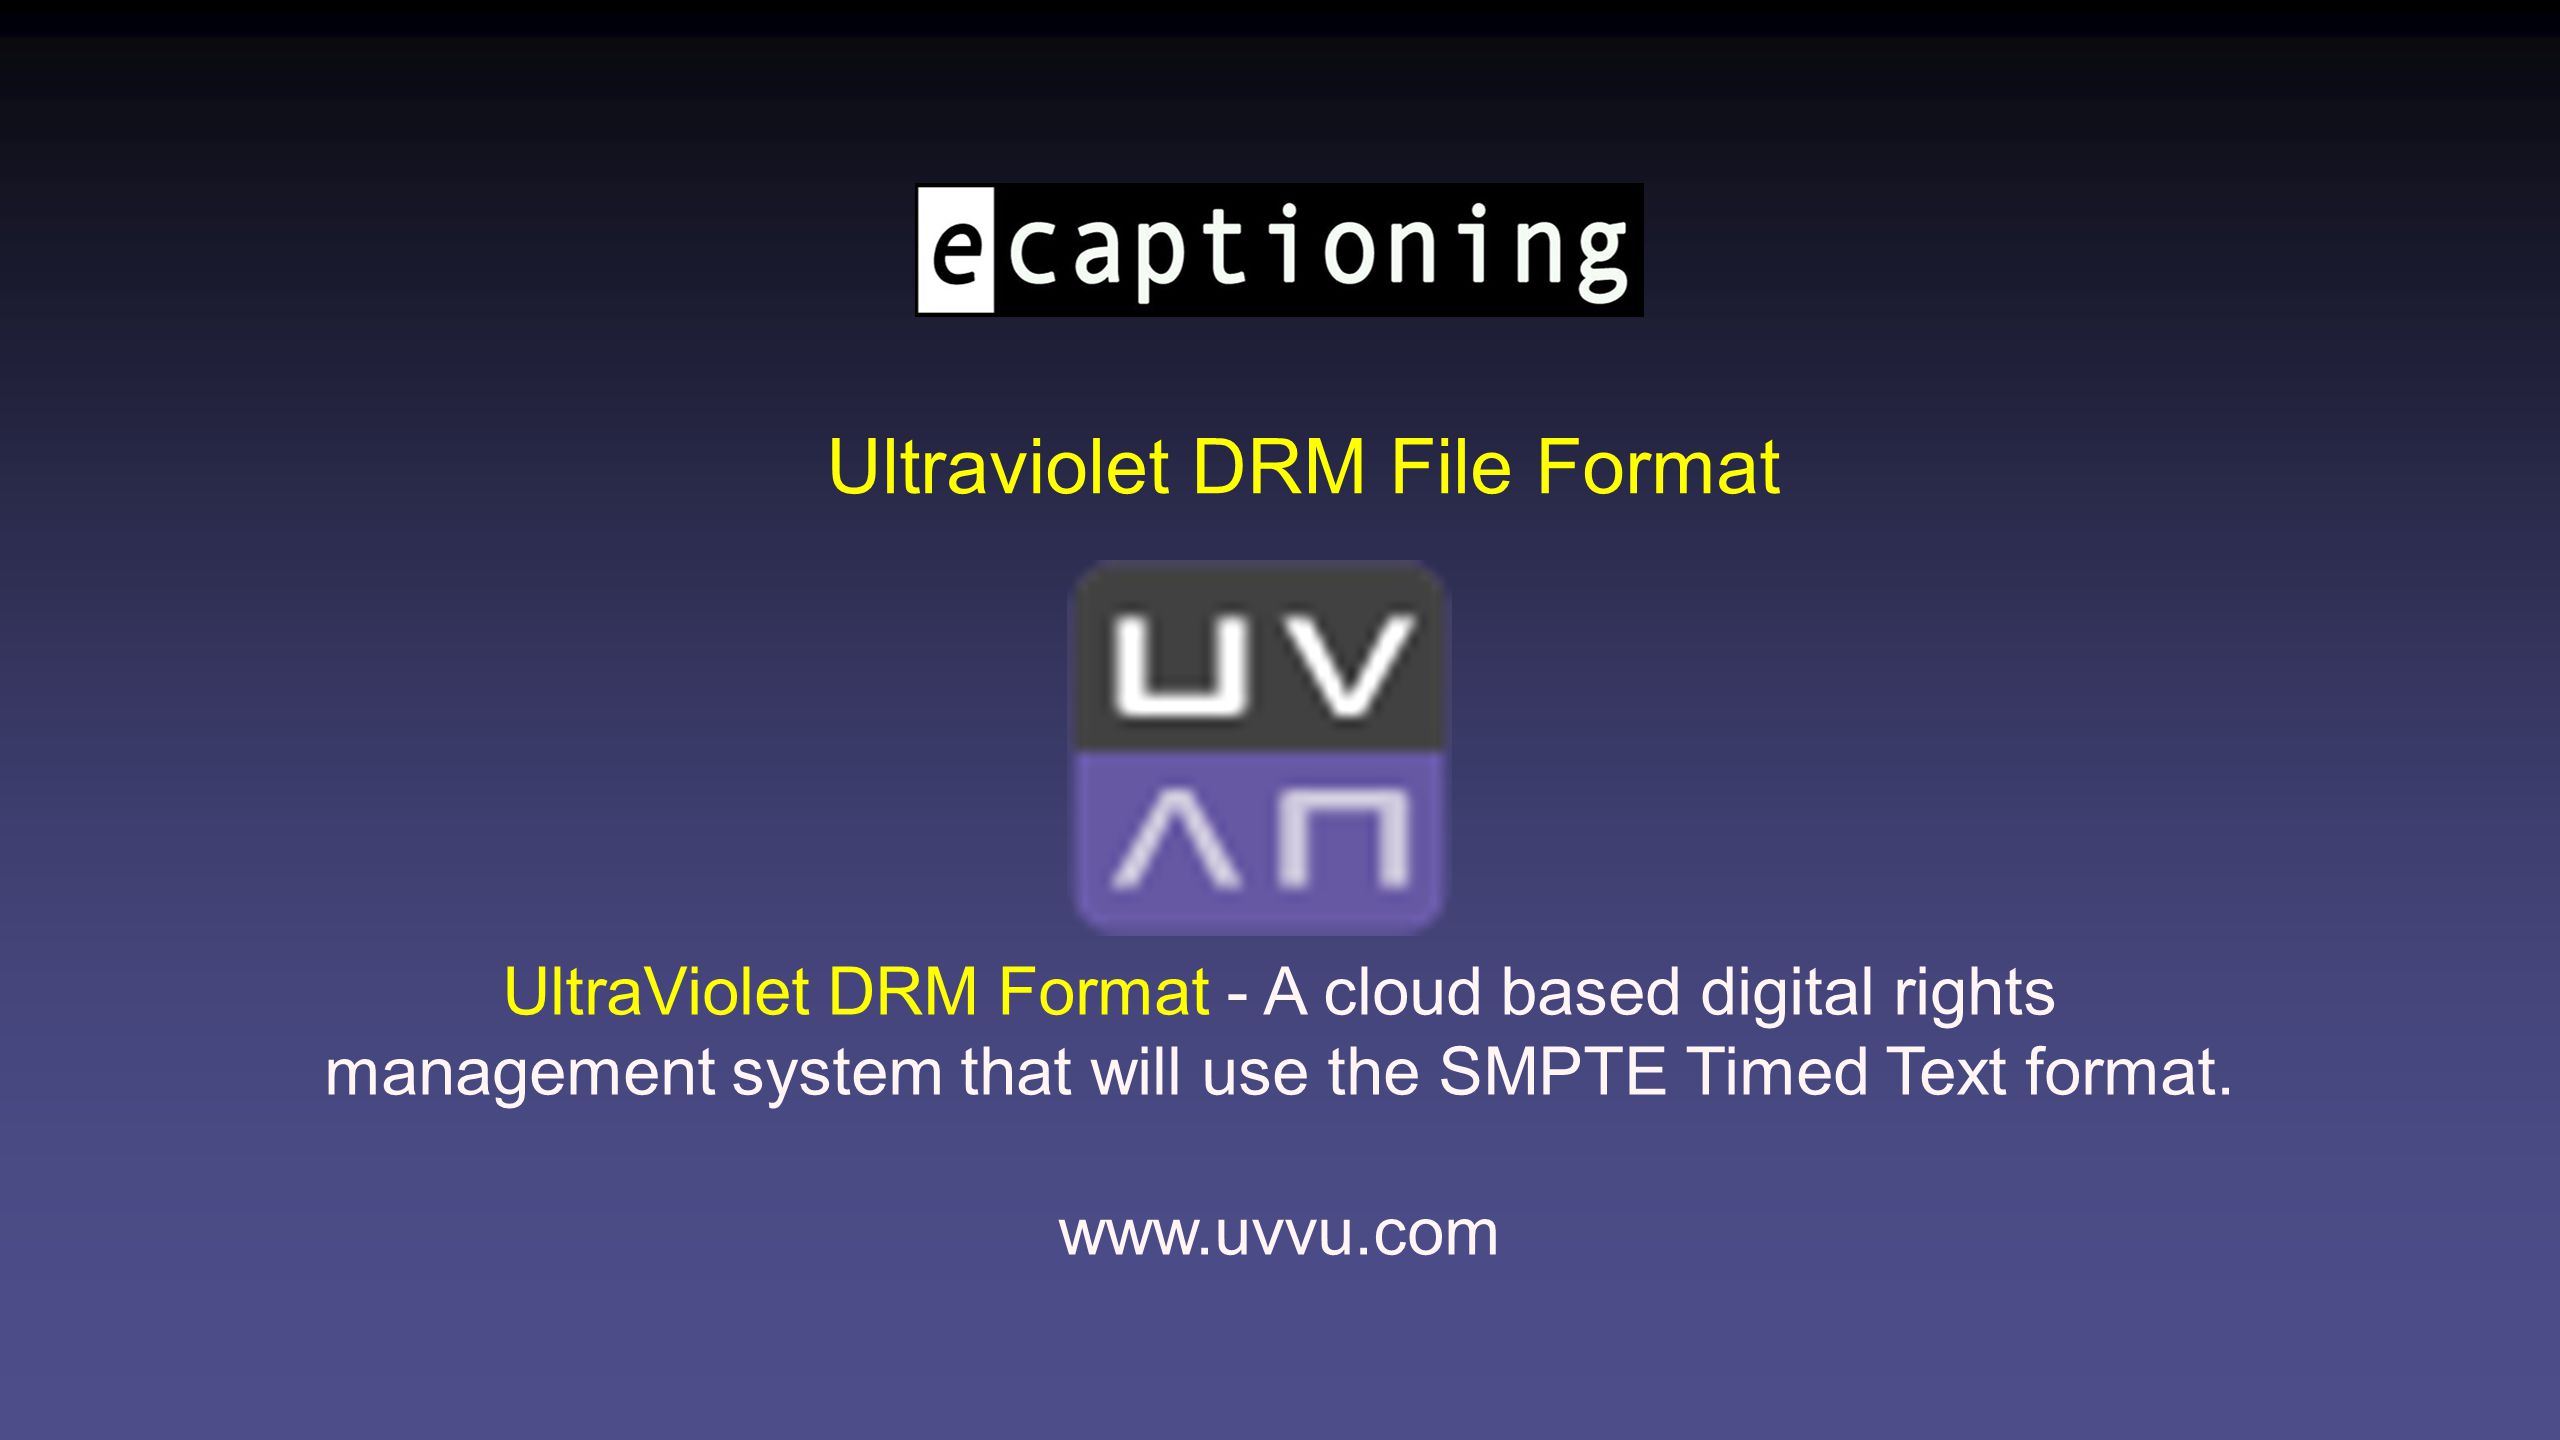 Ultraviolet DRM File Format UltraViolet DRM Format - A cloud based digital rights management system that will use the SMPTE Timed Text format.